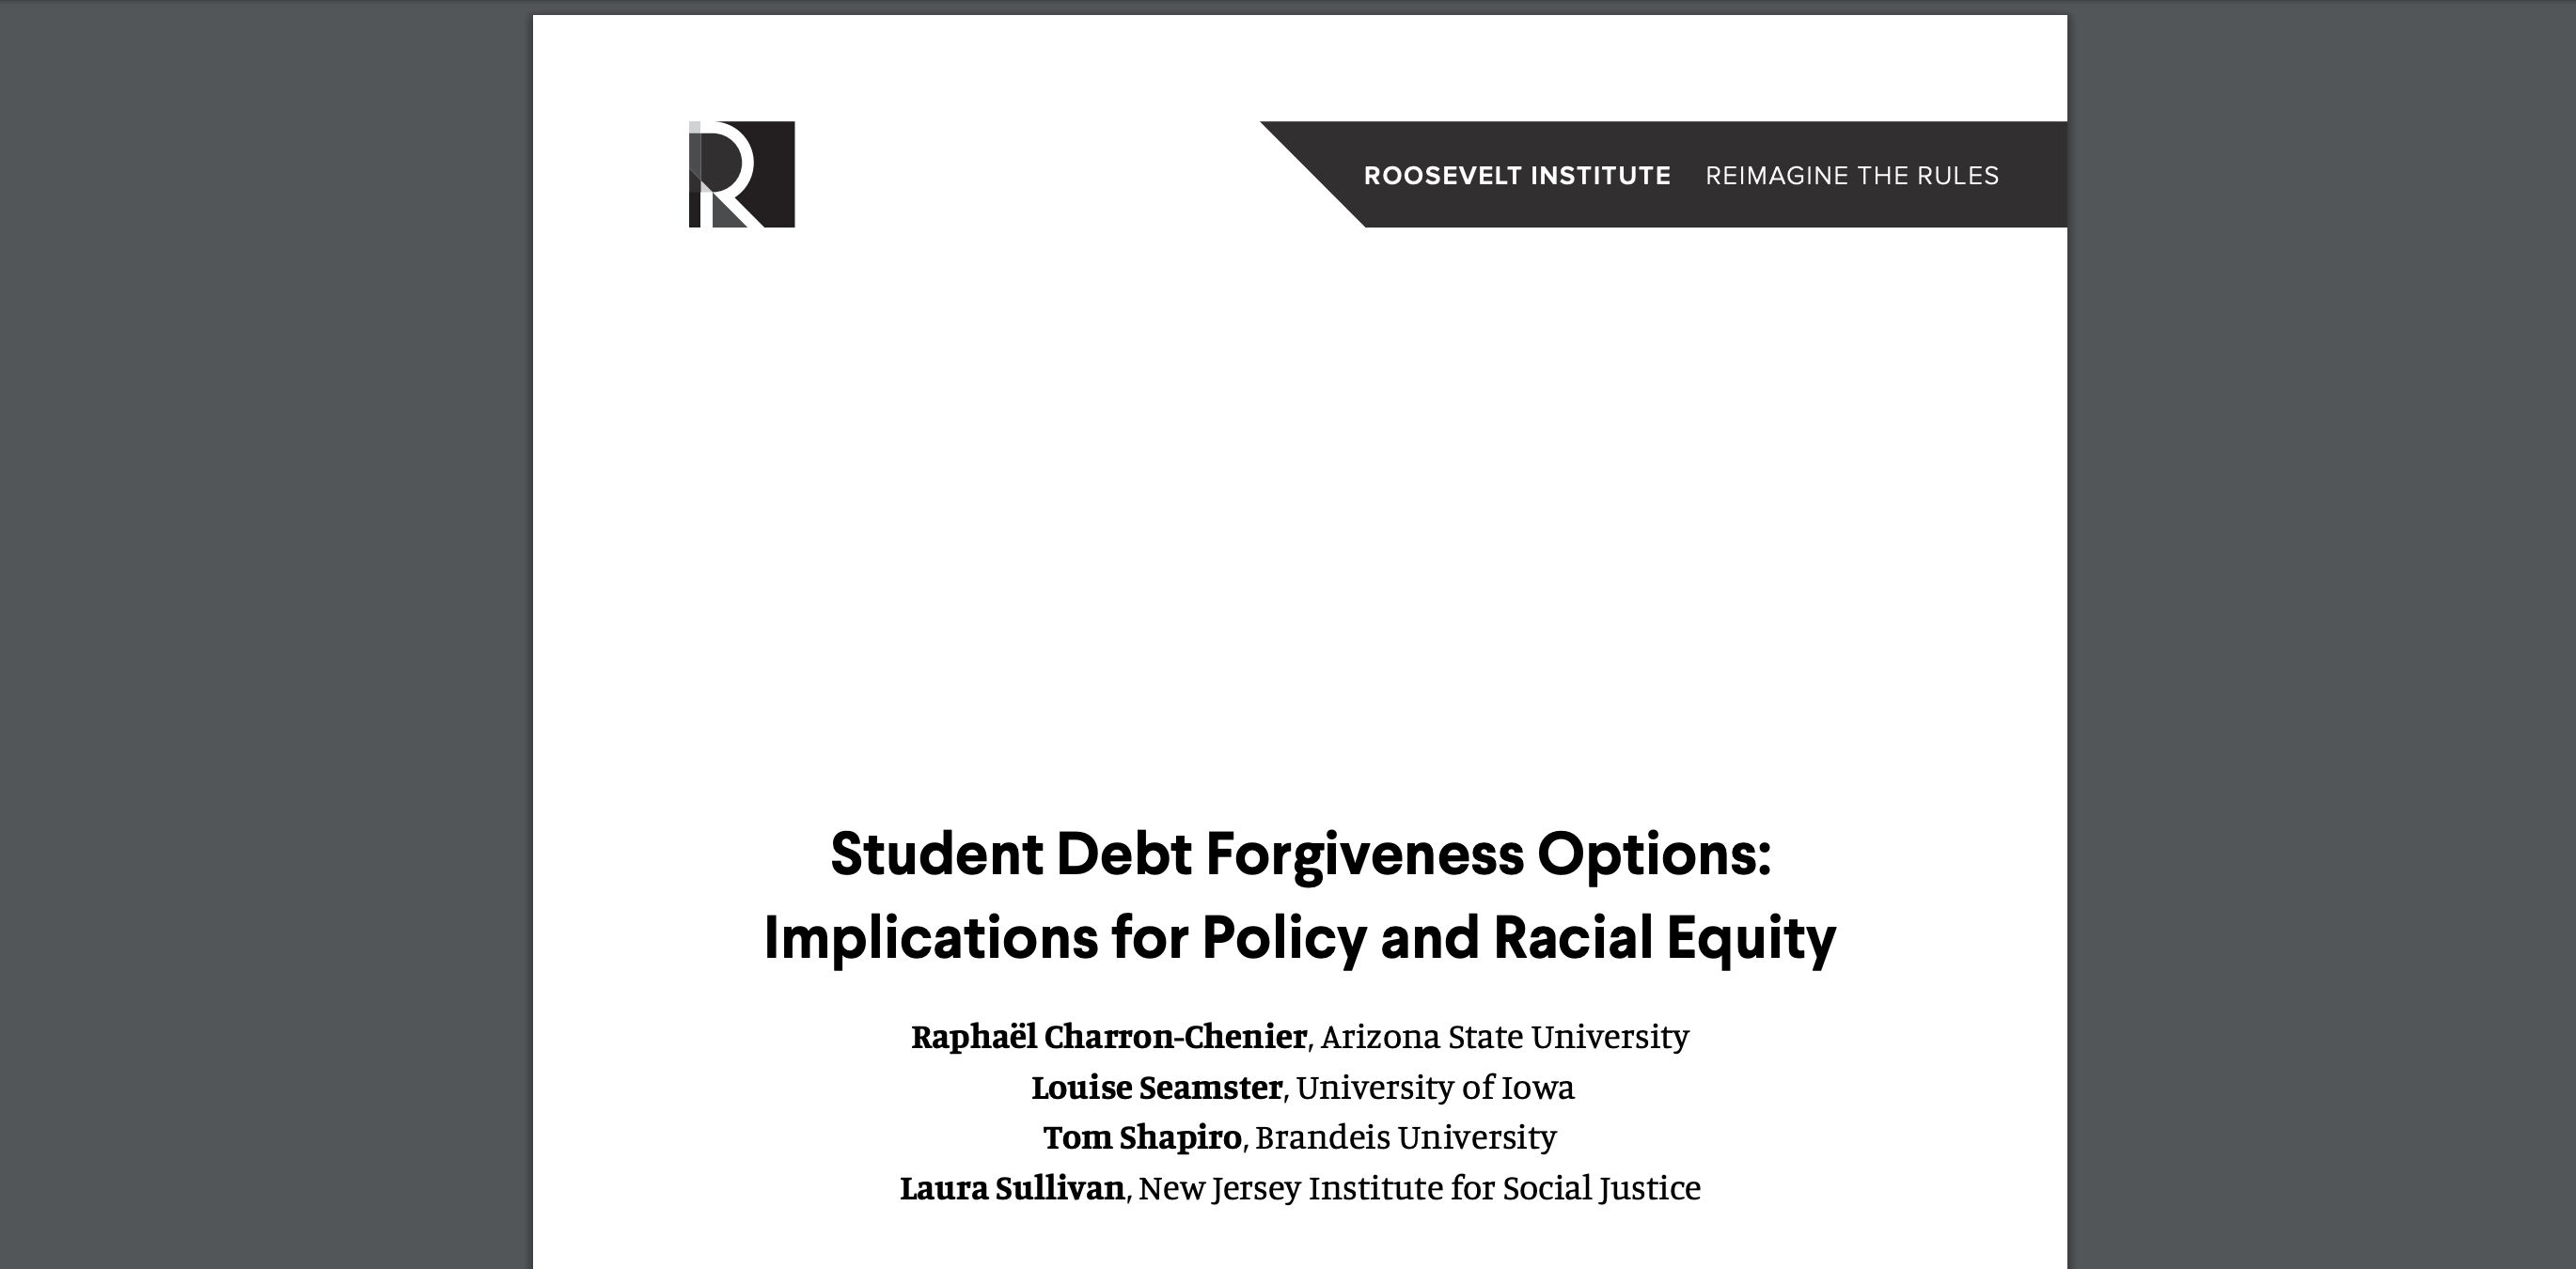 Read this new analysis investigating the impacts of student loan forgiveness solutions to our student debt crisis.